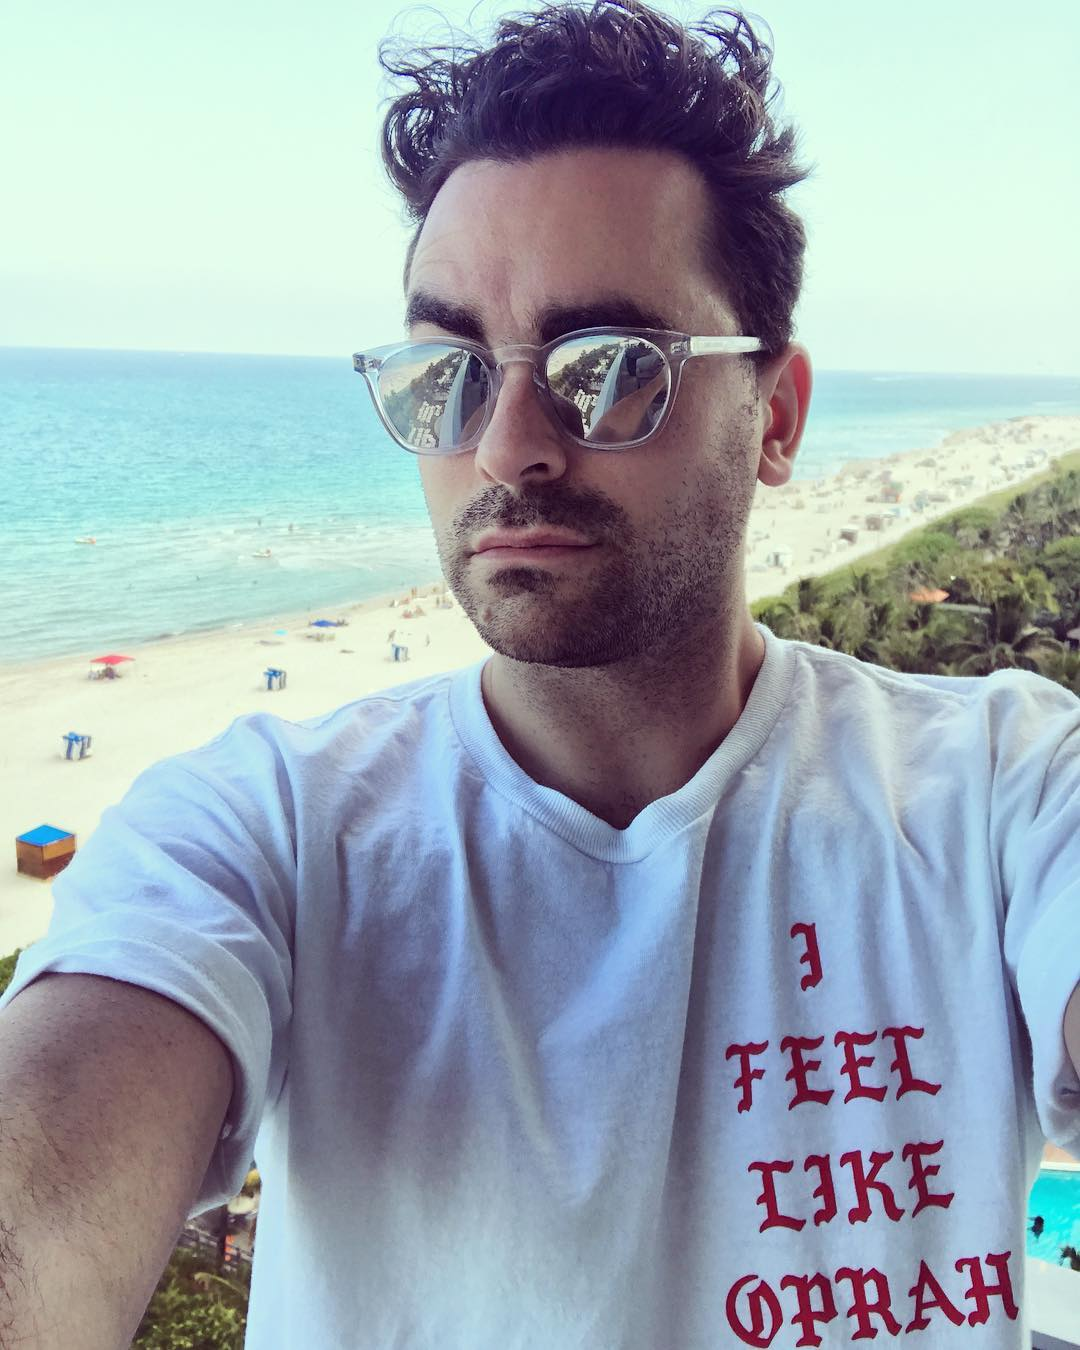 Dan Levy Instagram username